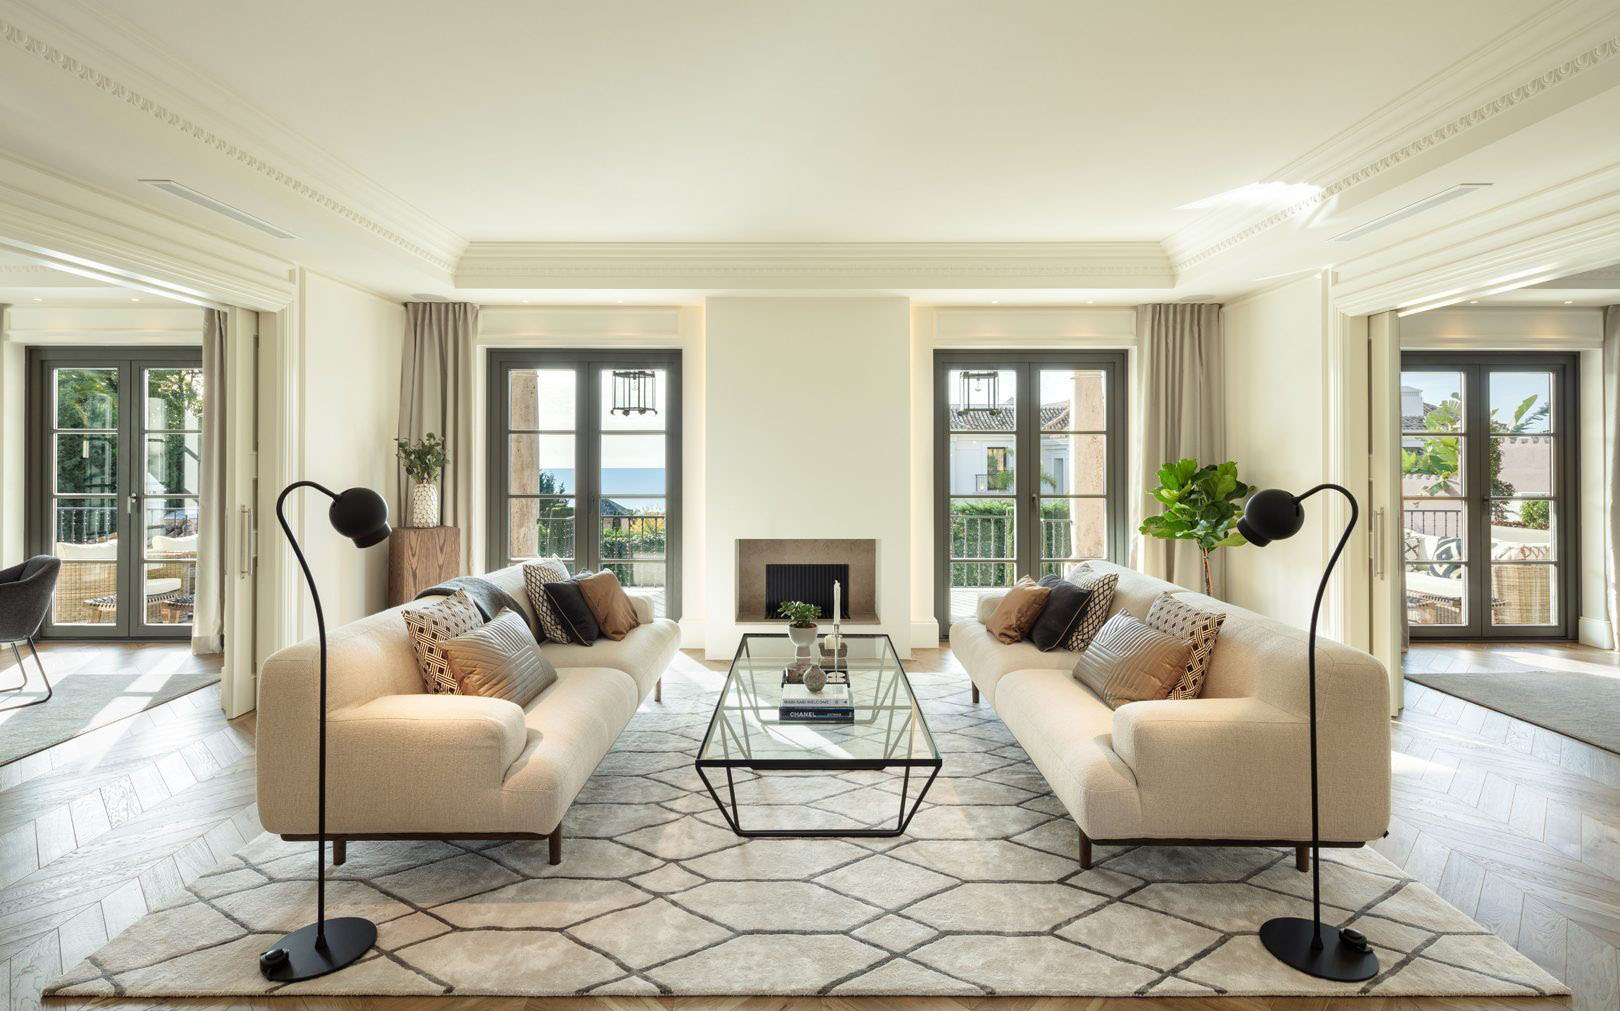 Modern chic living room with a natural warm cream color scheme. Gas fireplace with stone surround.